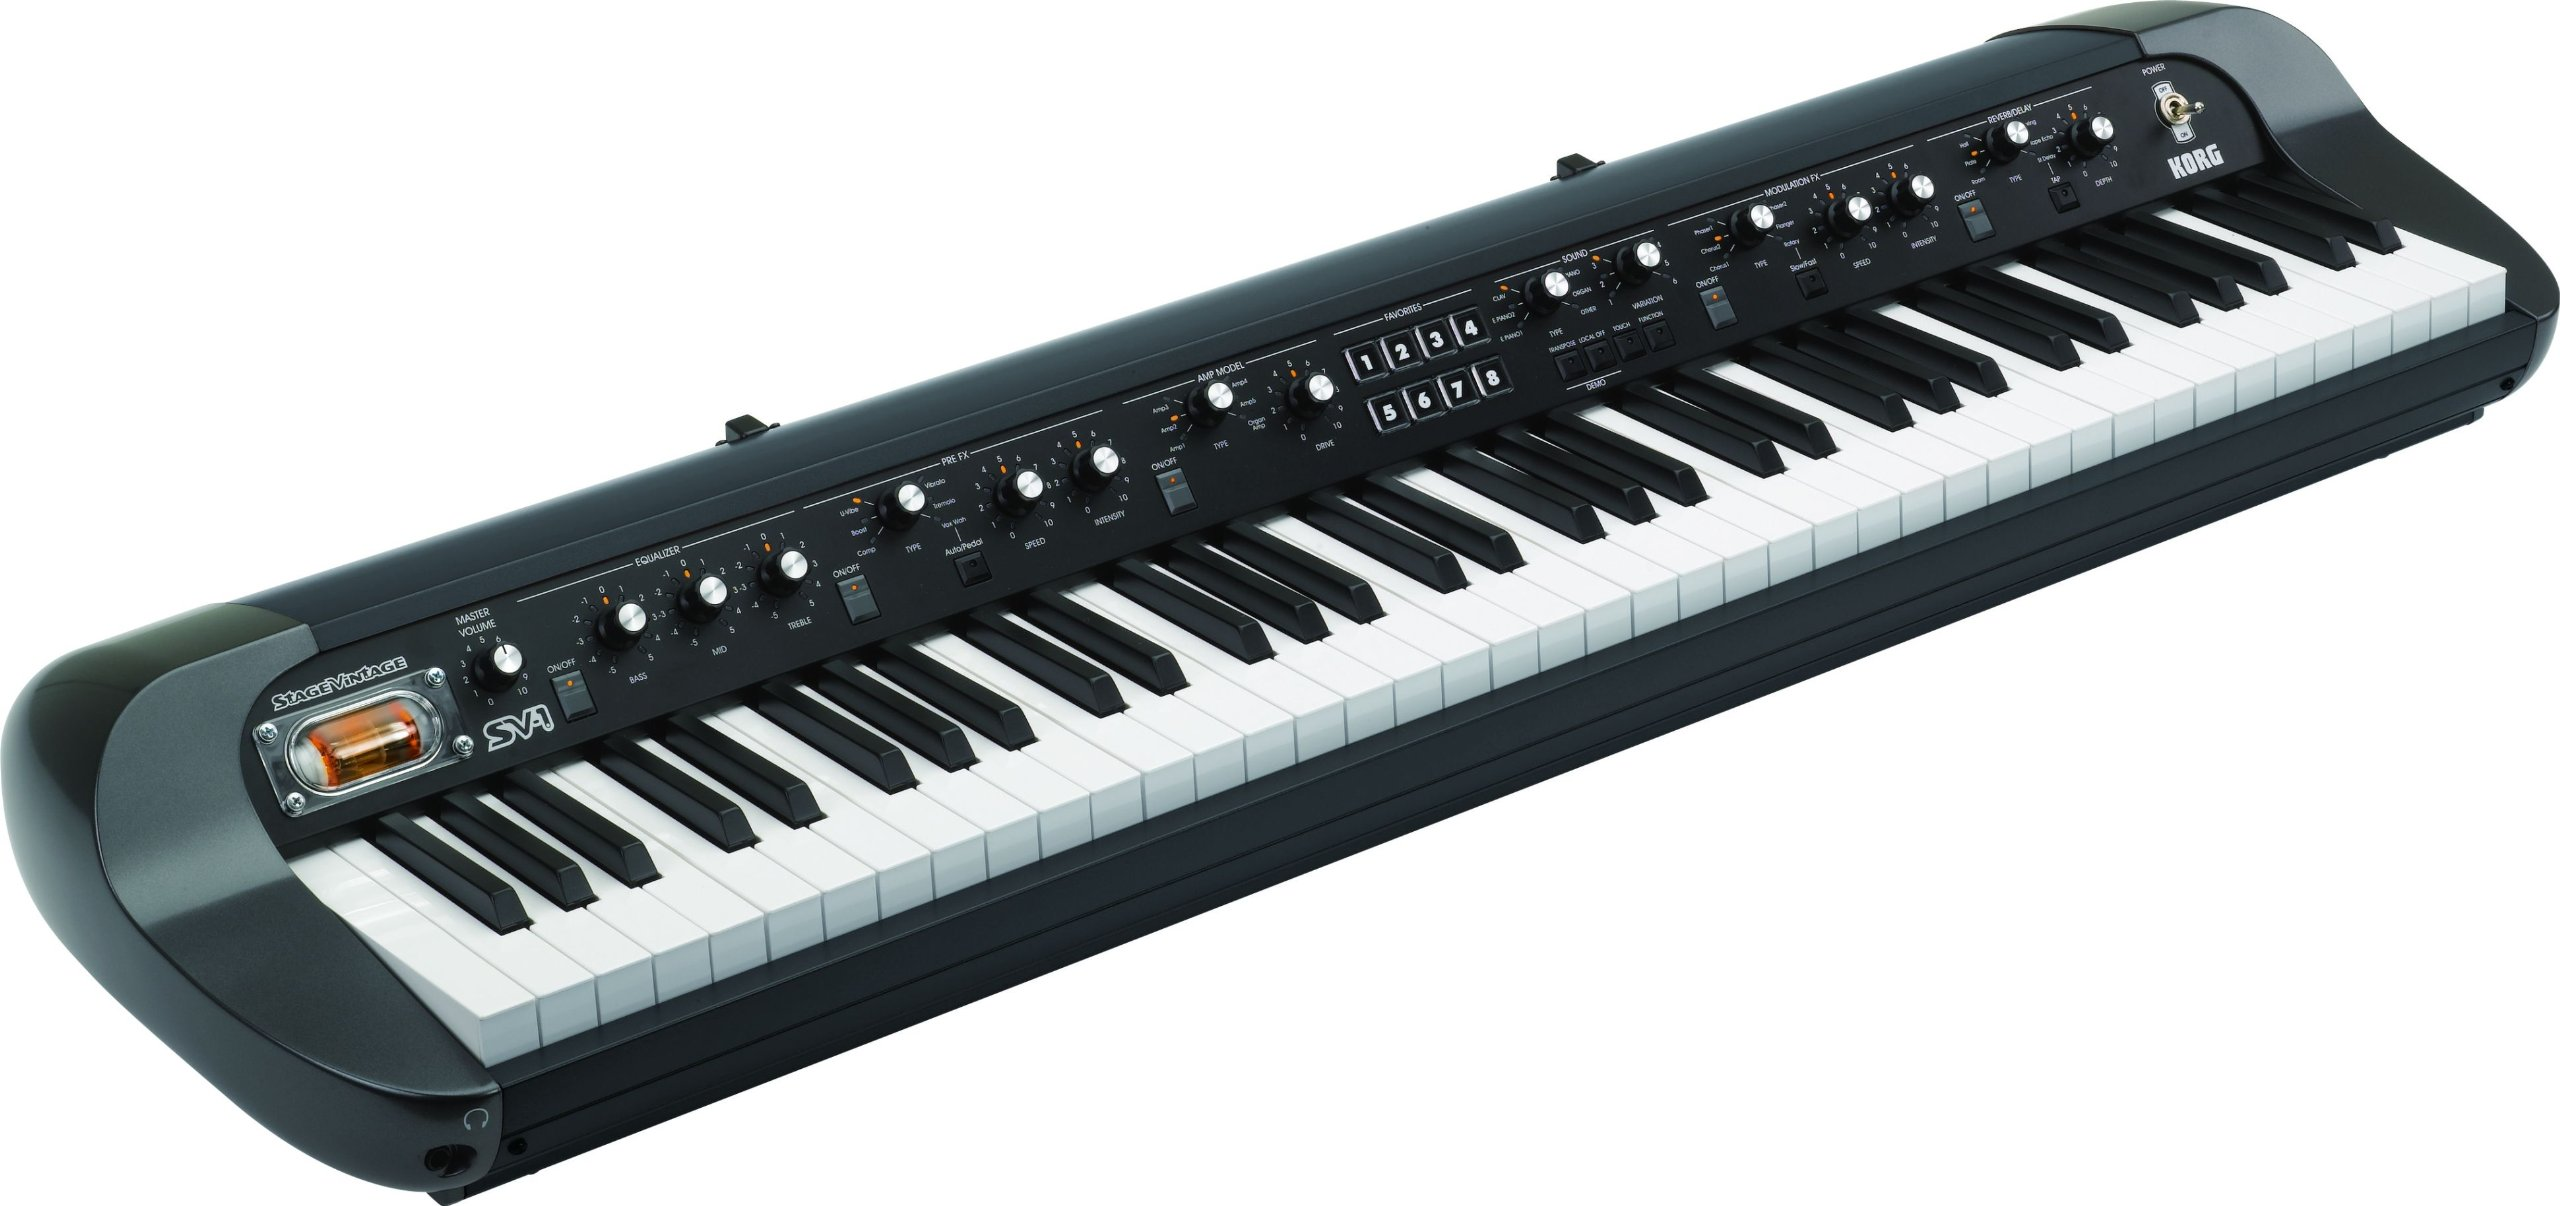 korg sv-1bk 73-key review